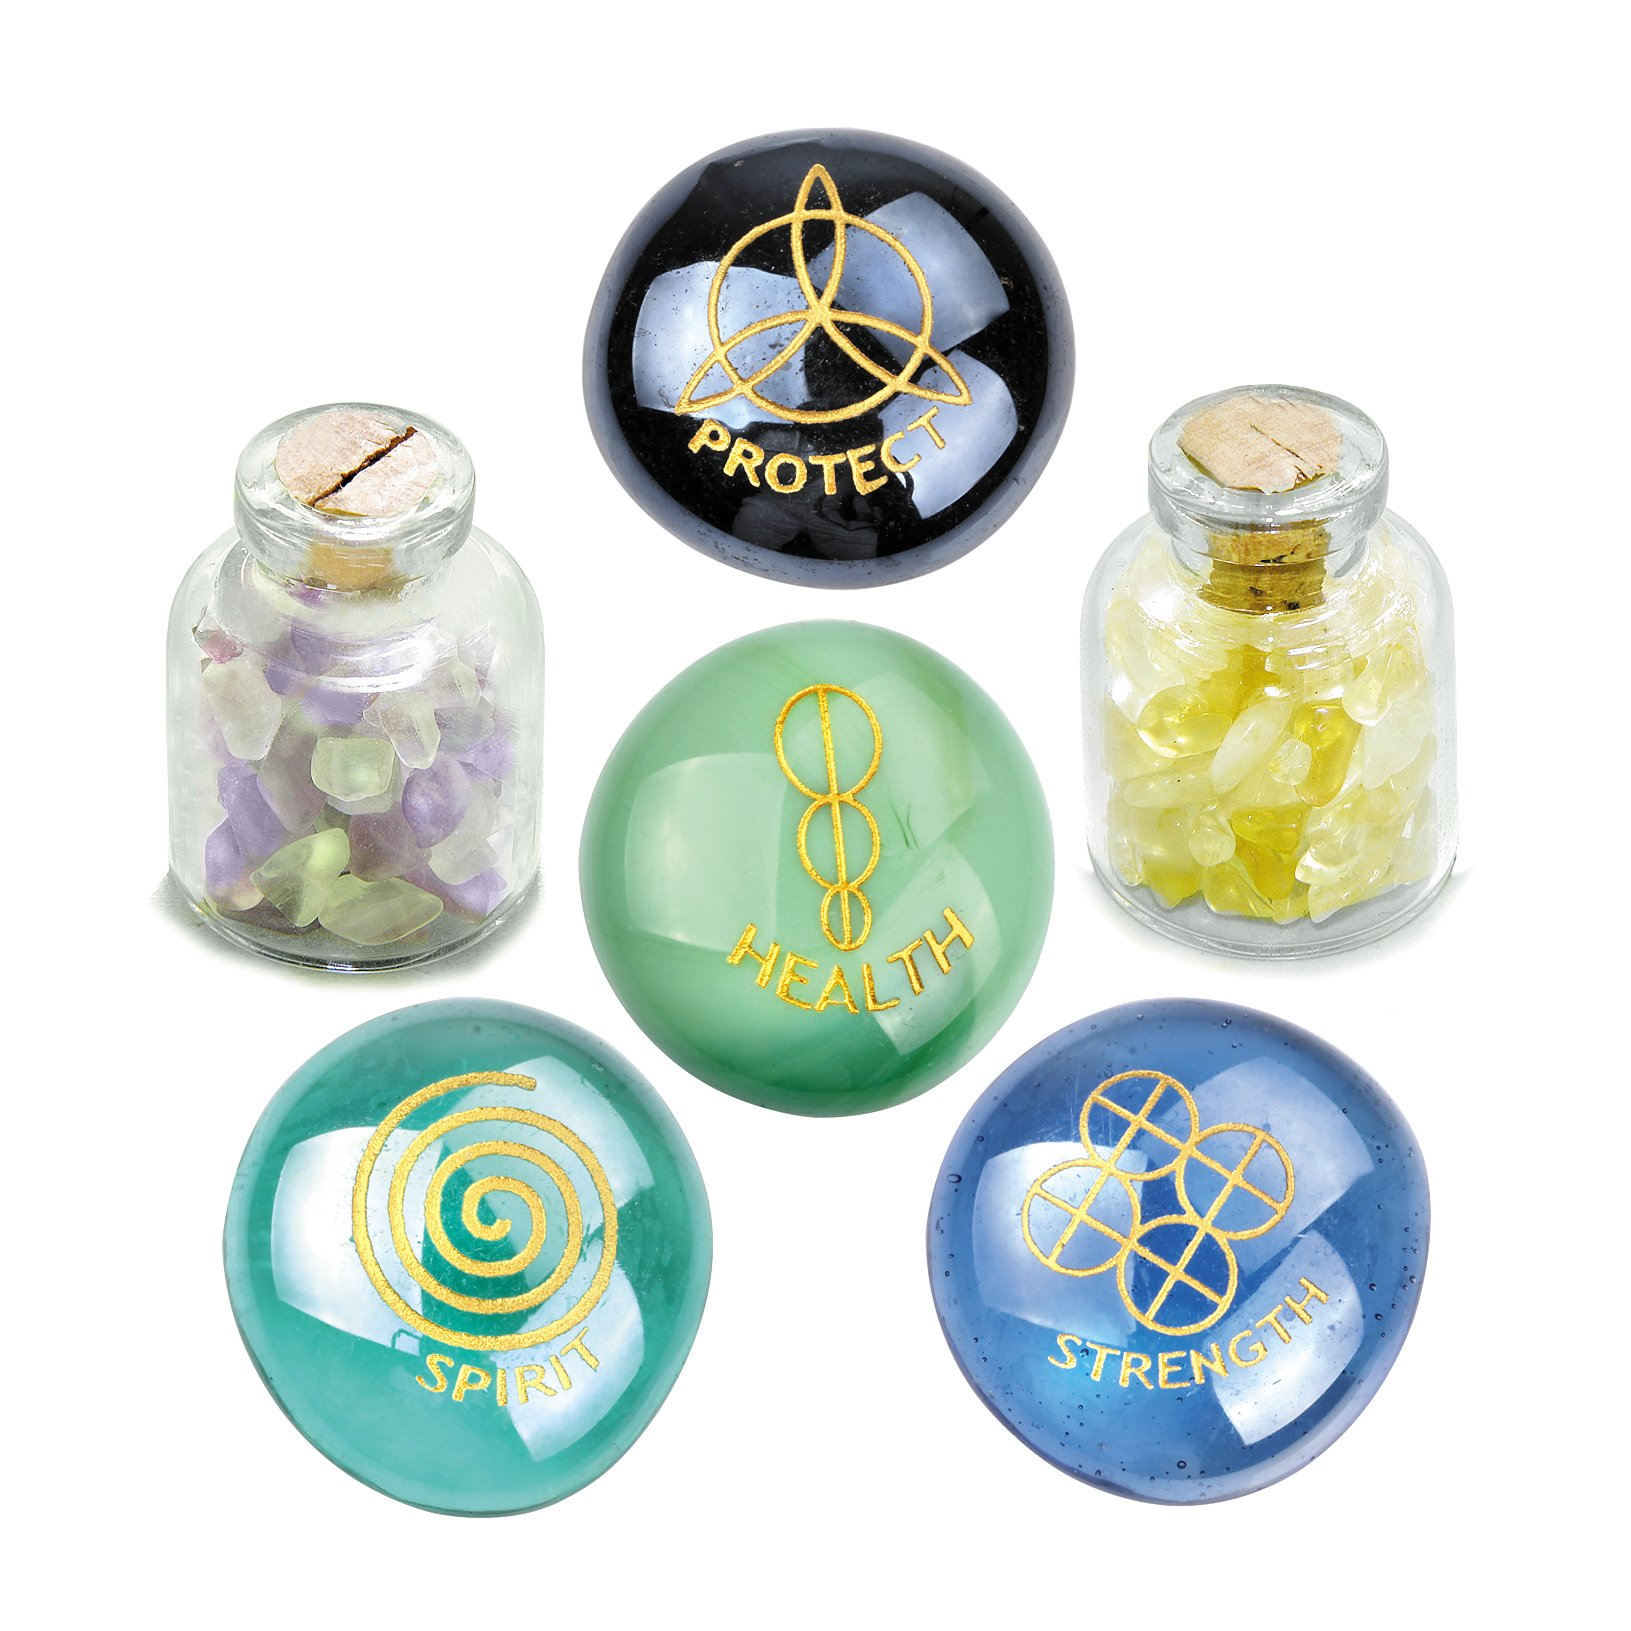 Reiki Magical Healing Spirit Strength ProtectiInspirational Amulets Glass Stones Citrine Fluorite